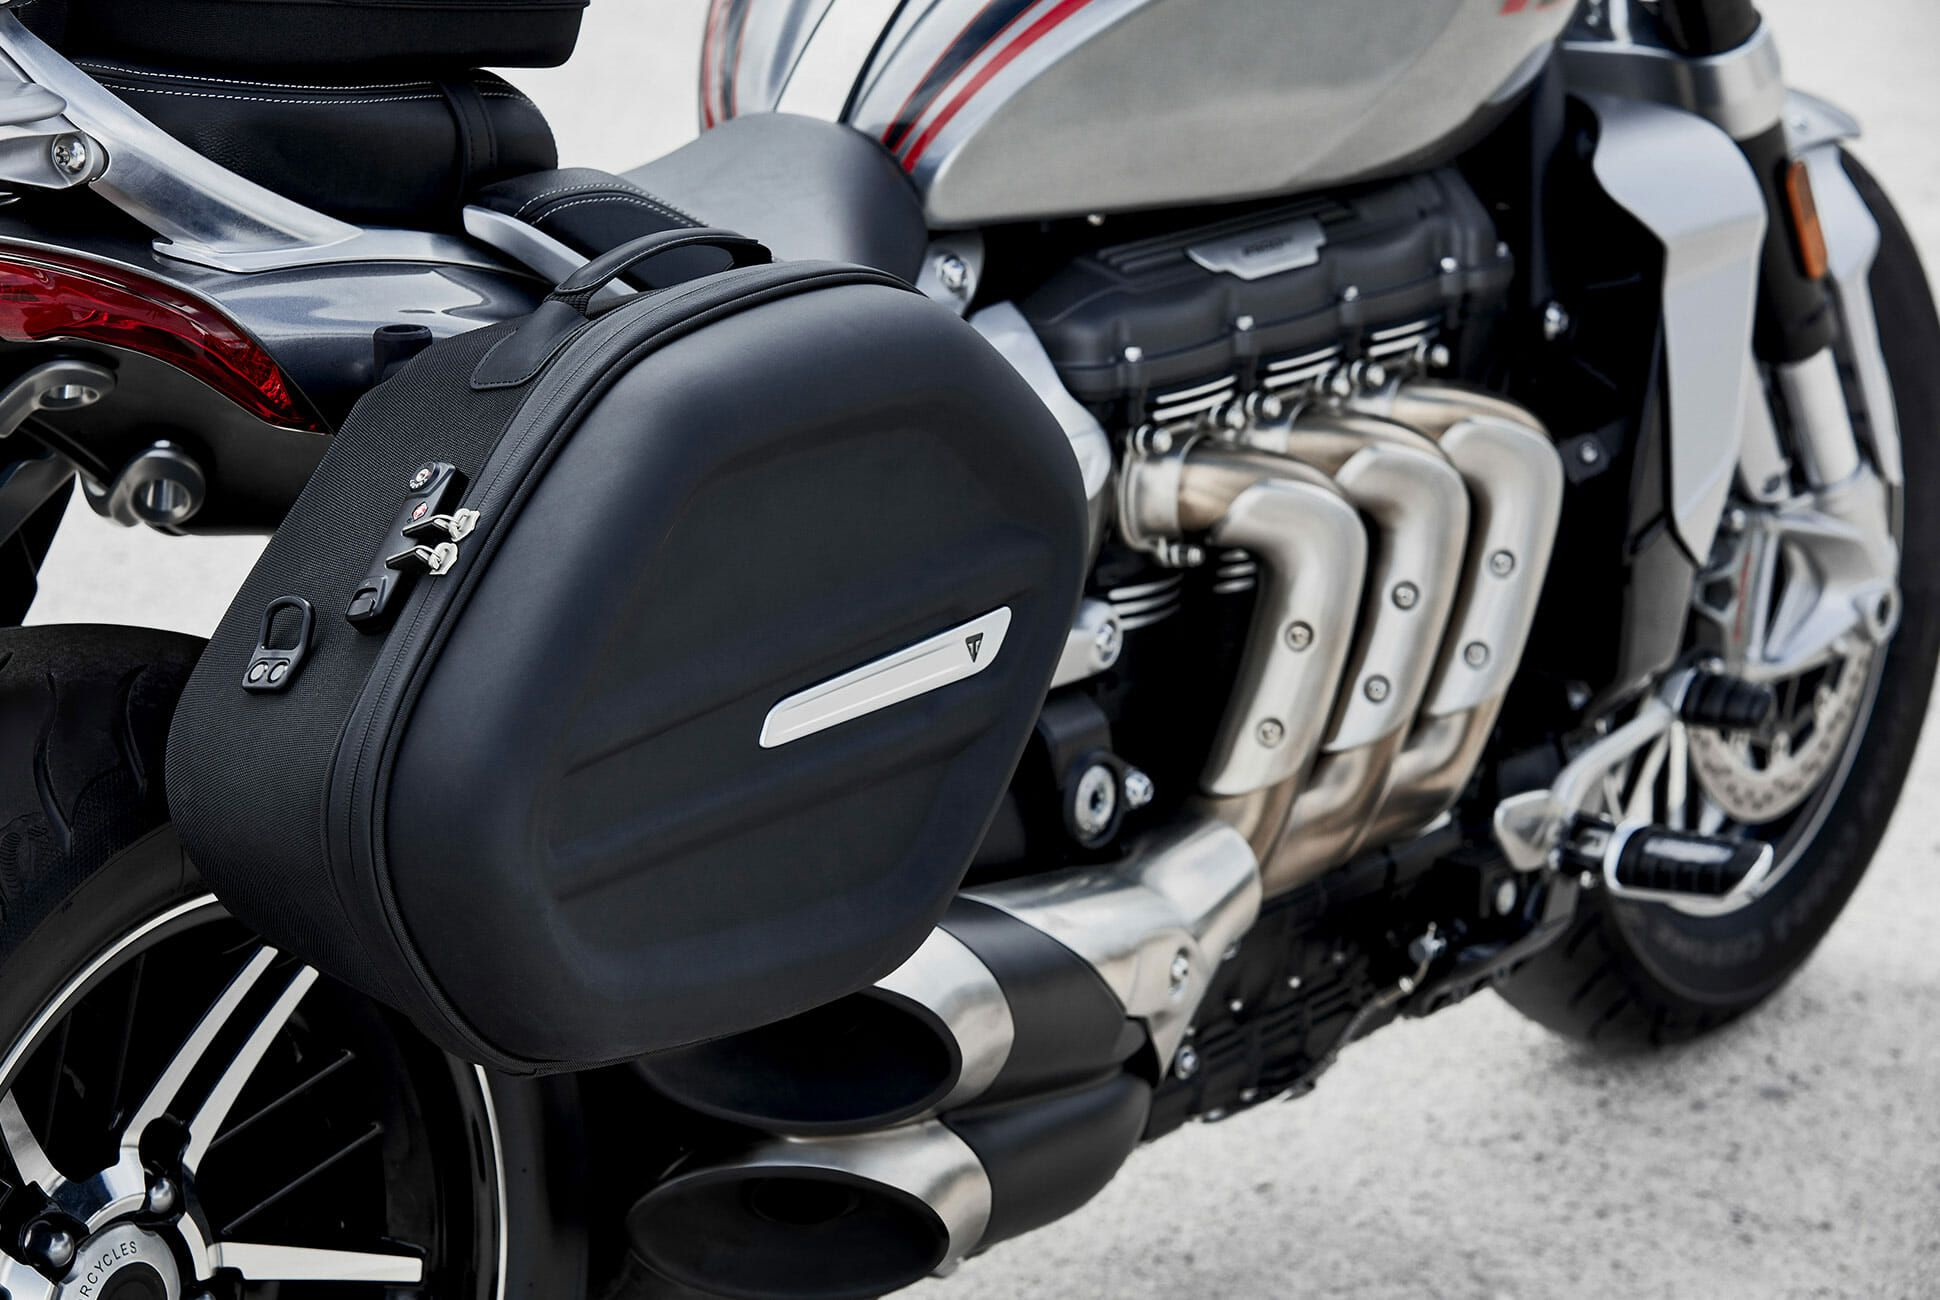 Triumph-Rocket-3-gear-patrol-slide-6